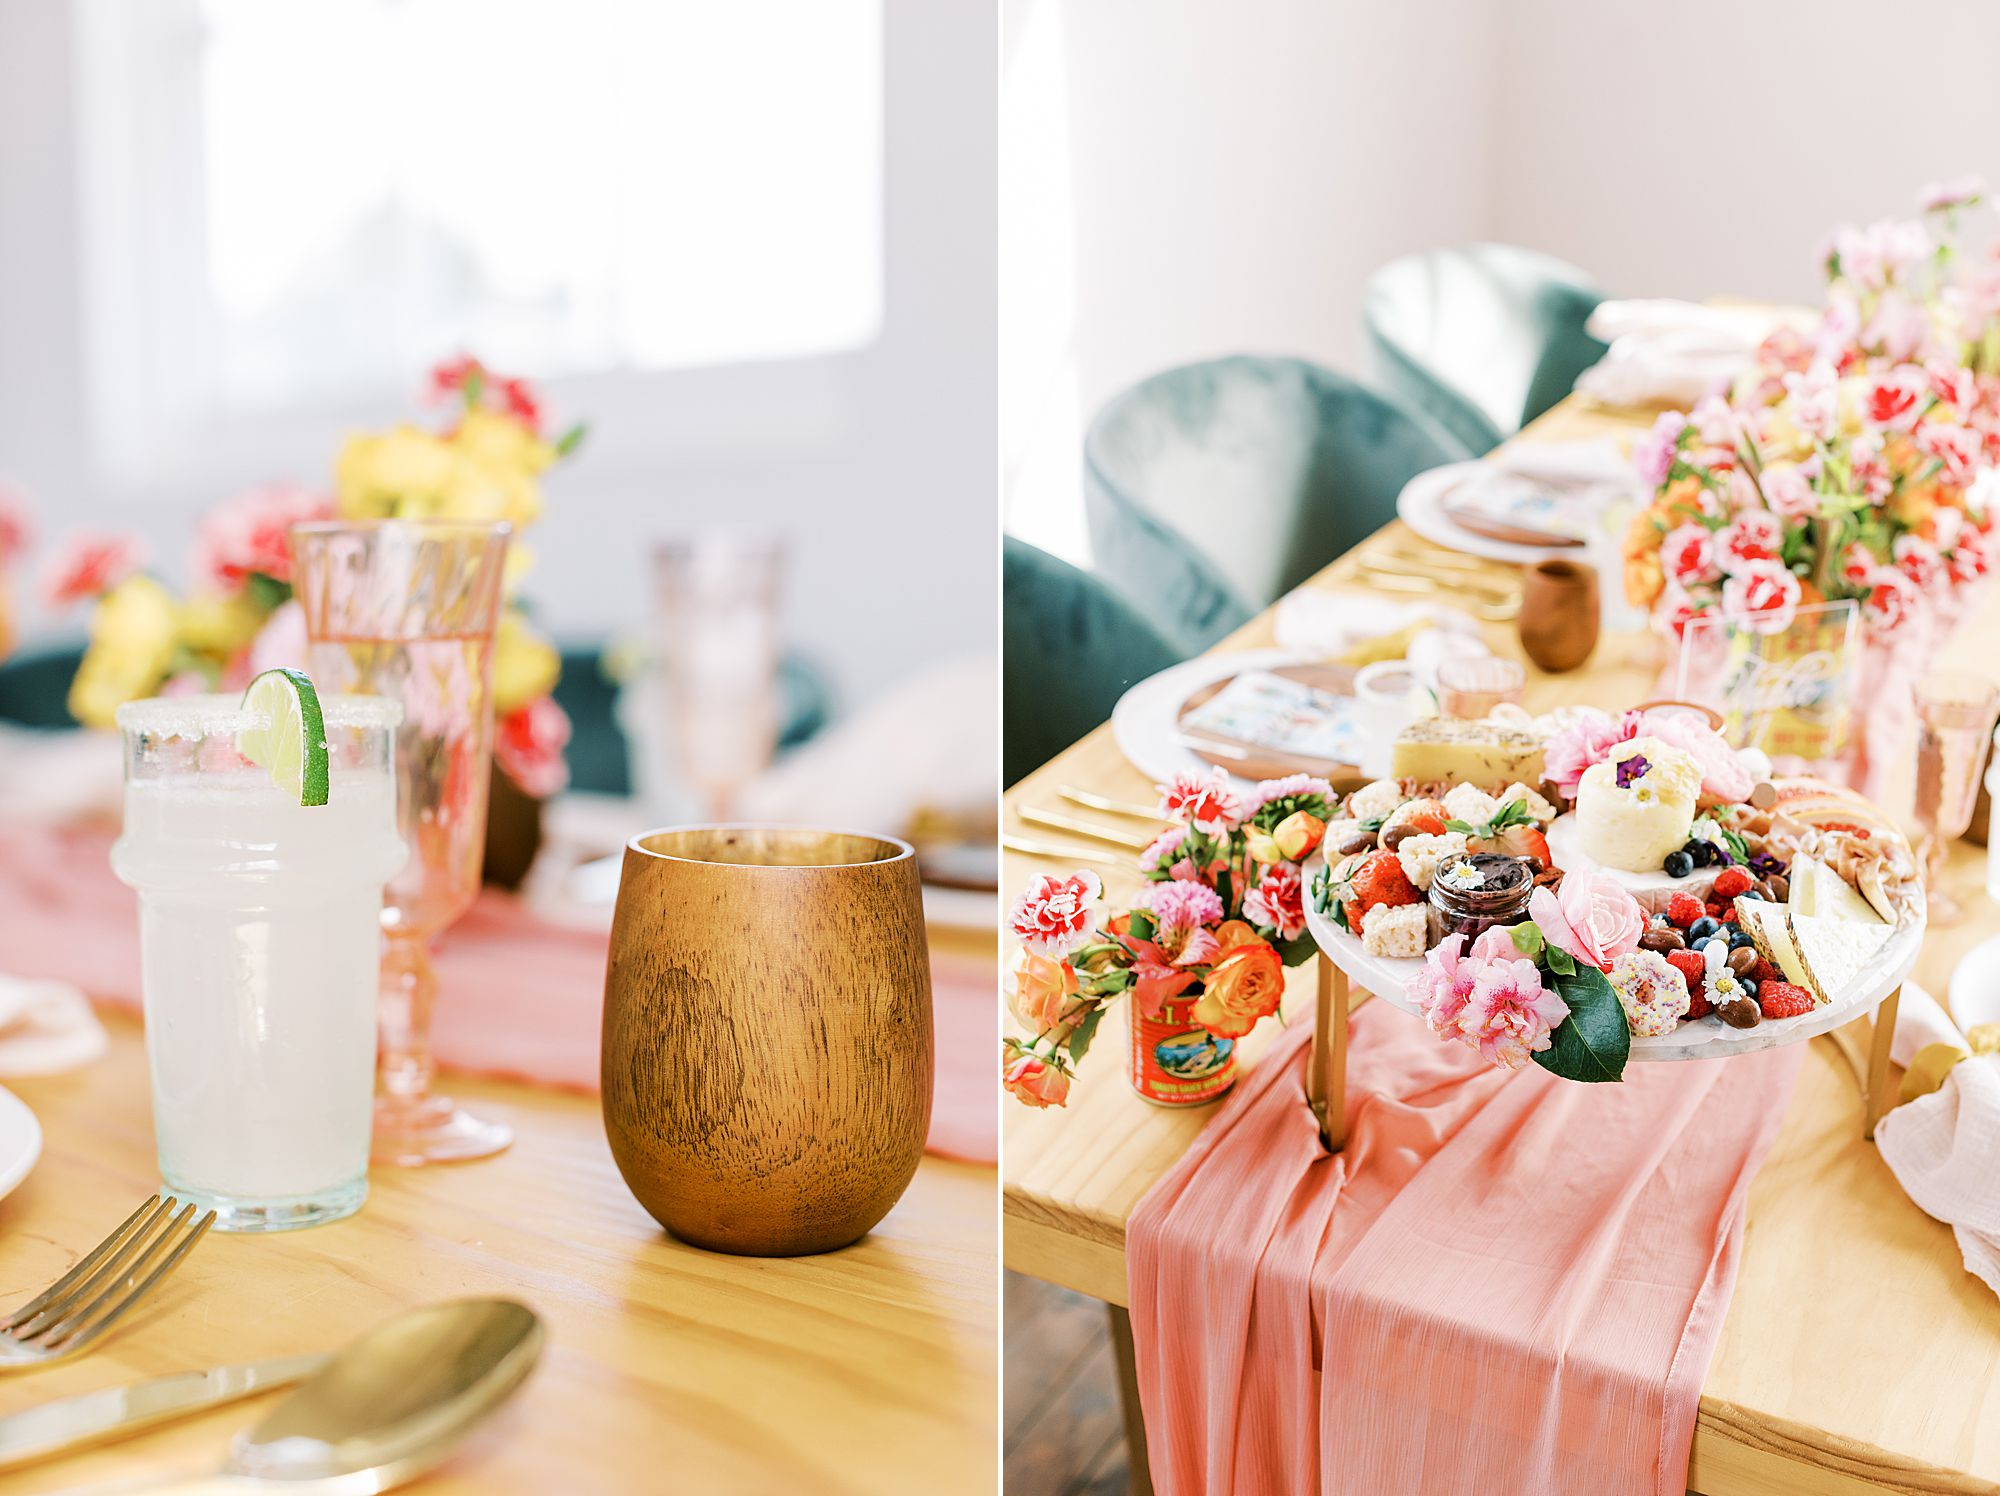 Cinco De Mayo Inspiration for Your FIesta - Party Crush Studio and Ashley Baumgartner_0048.jpg